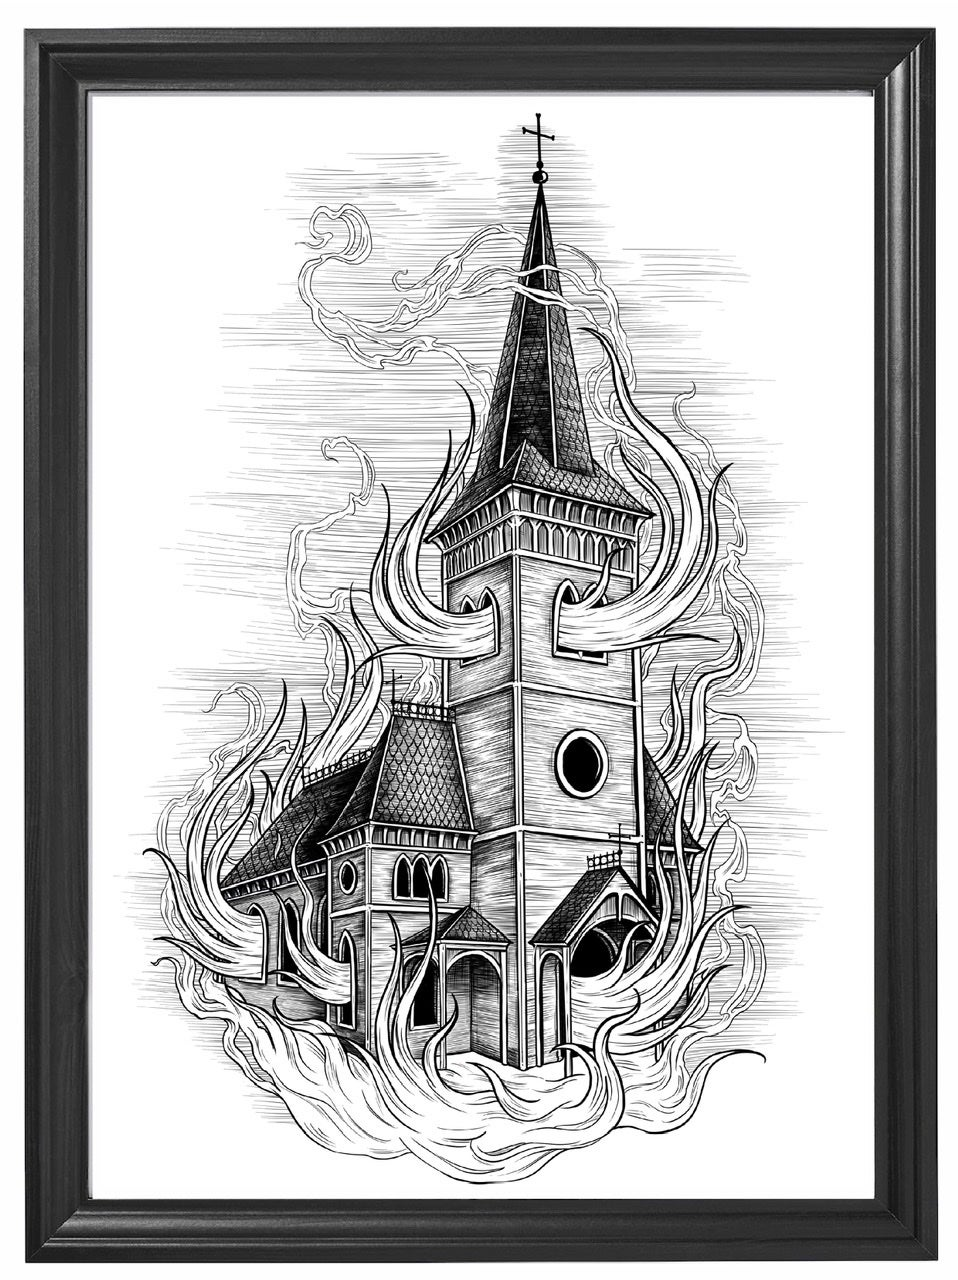 BURNING CHURCH - A3 PRINT LIMITED EDITION